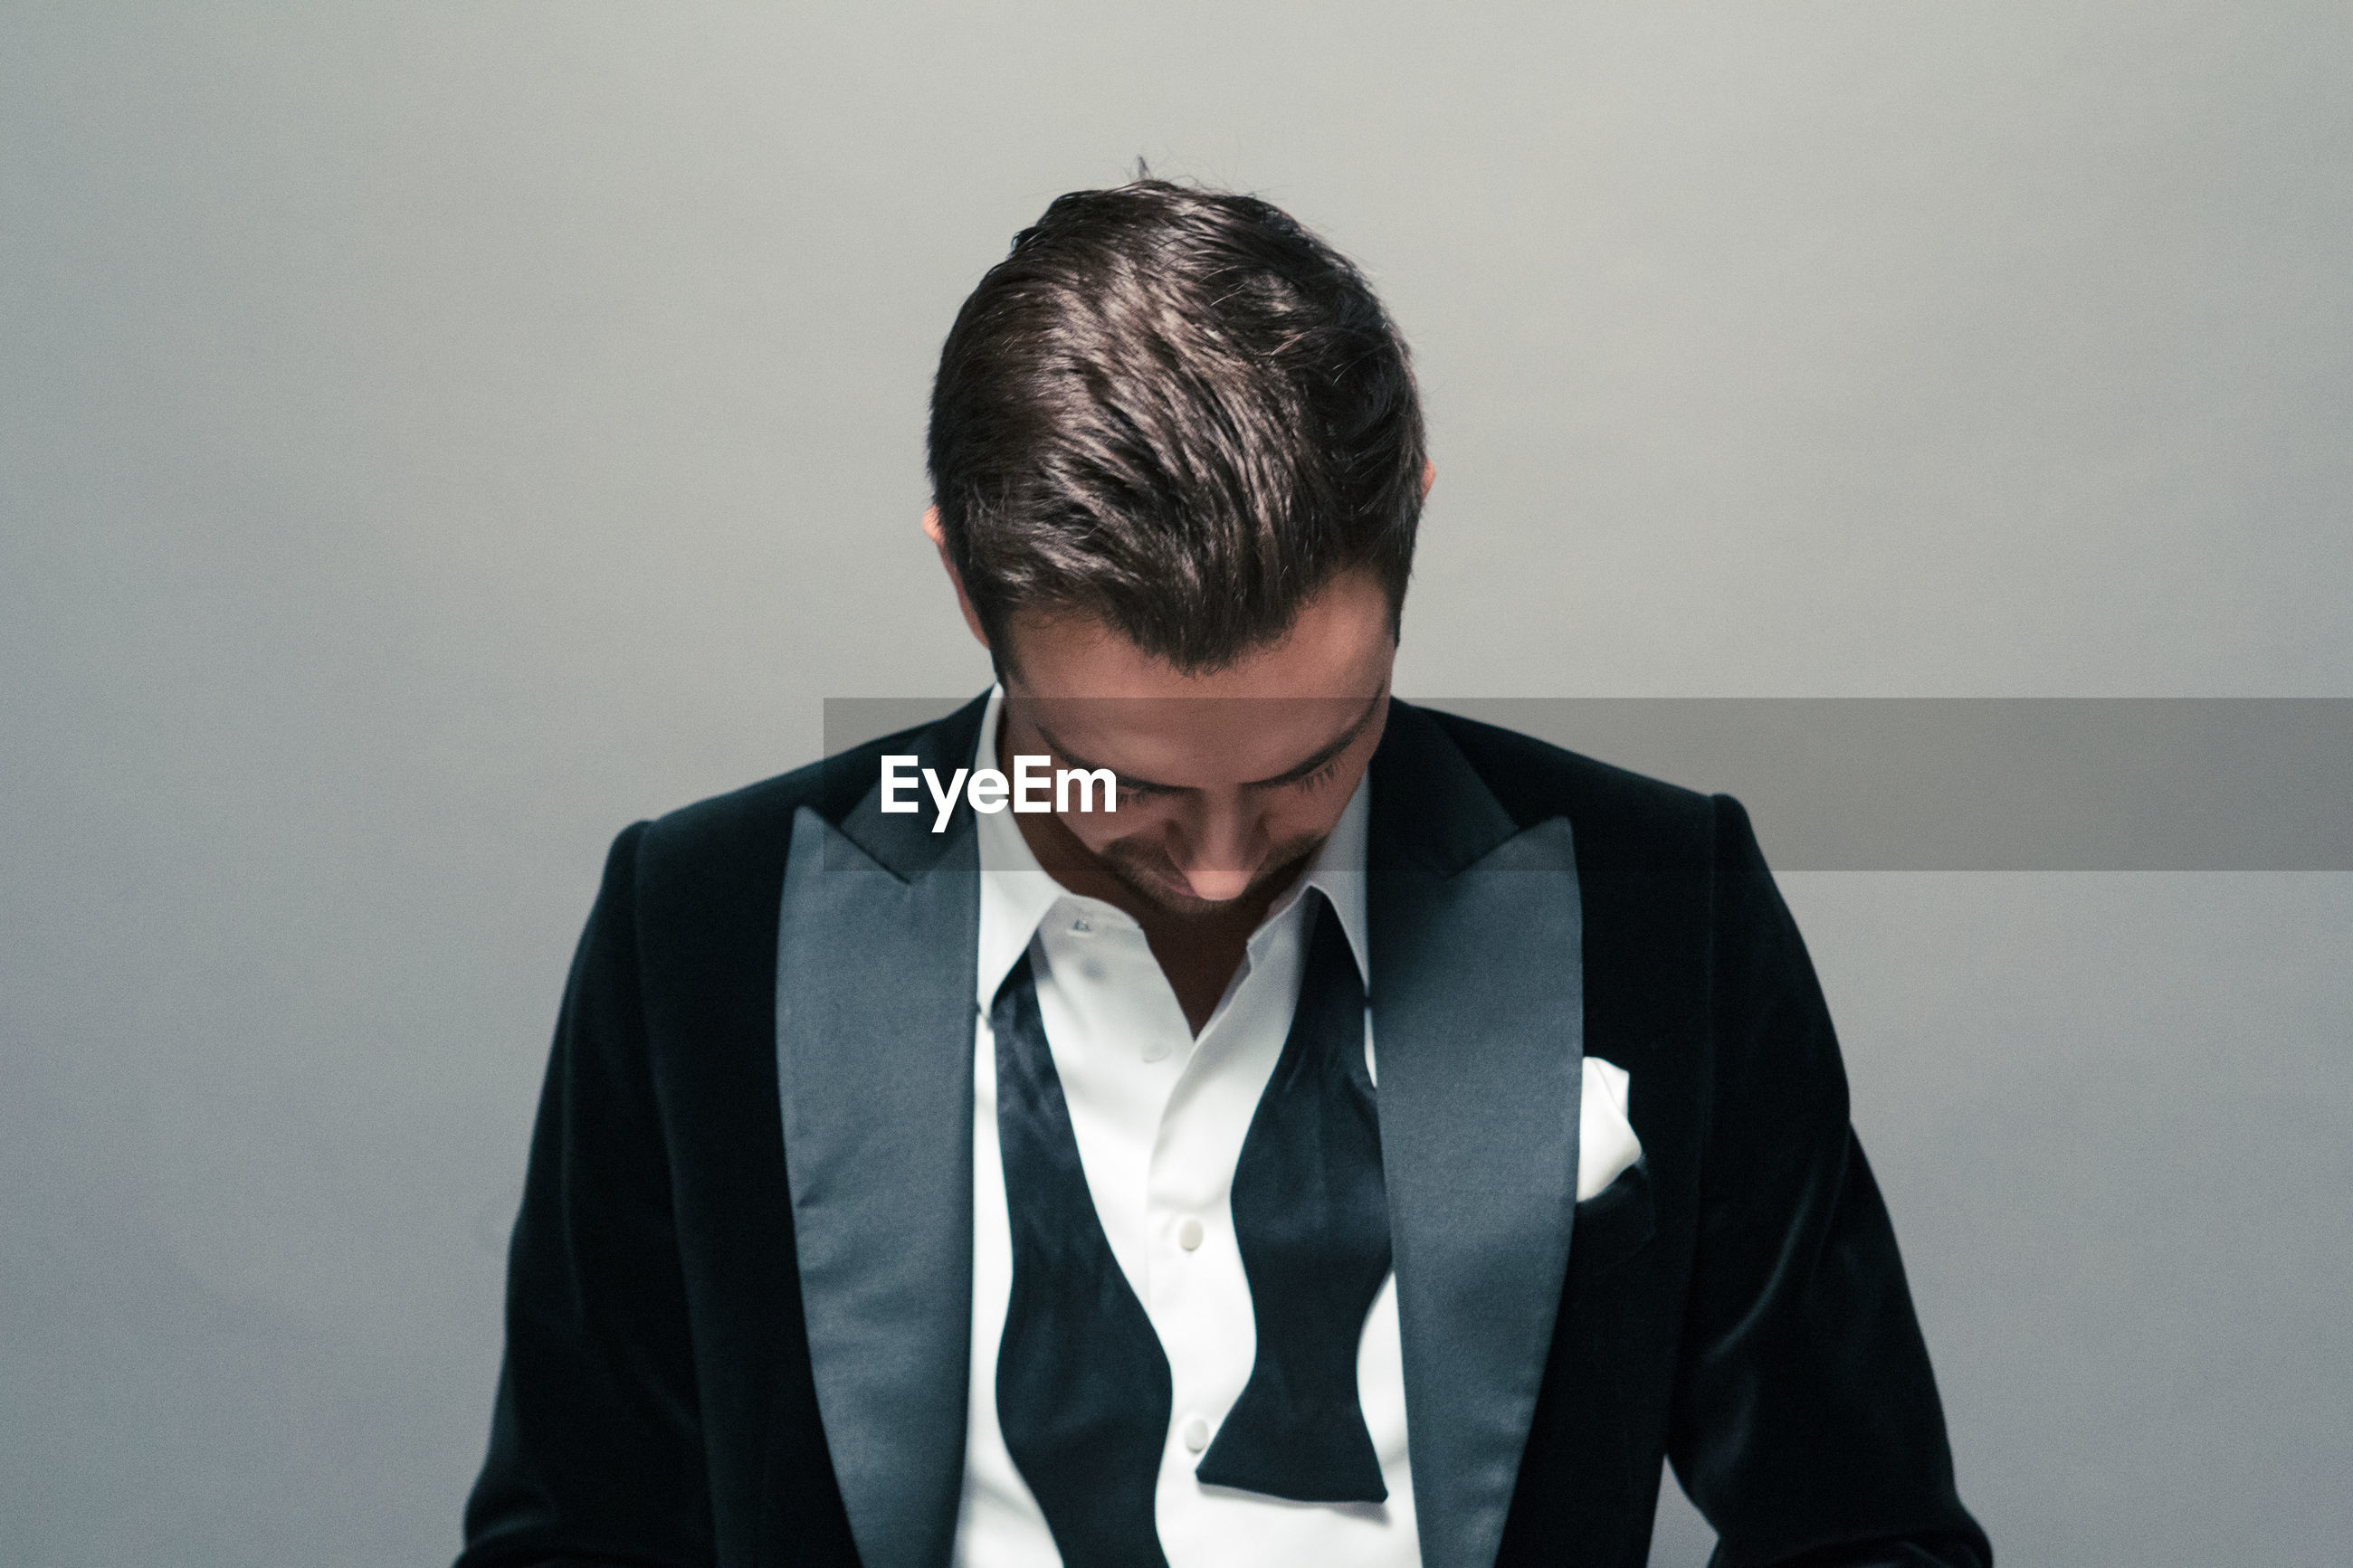 Sad young man in suit against gray background